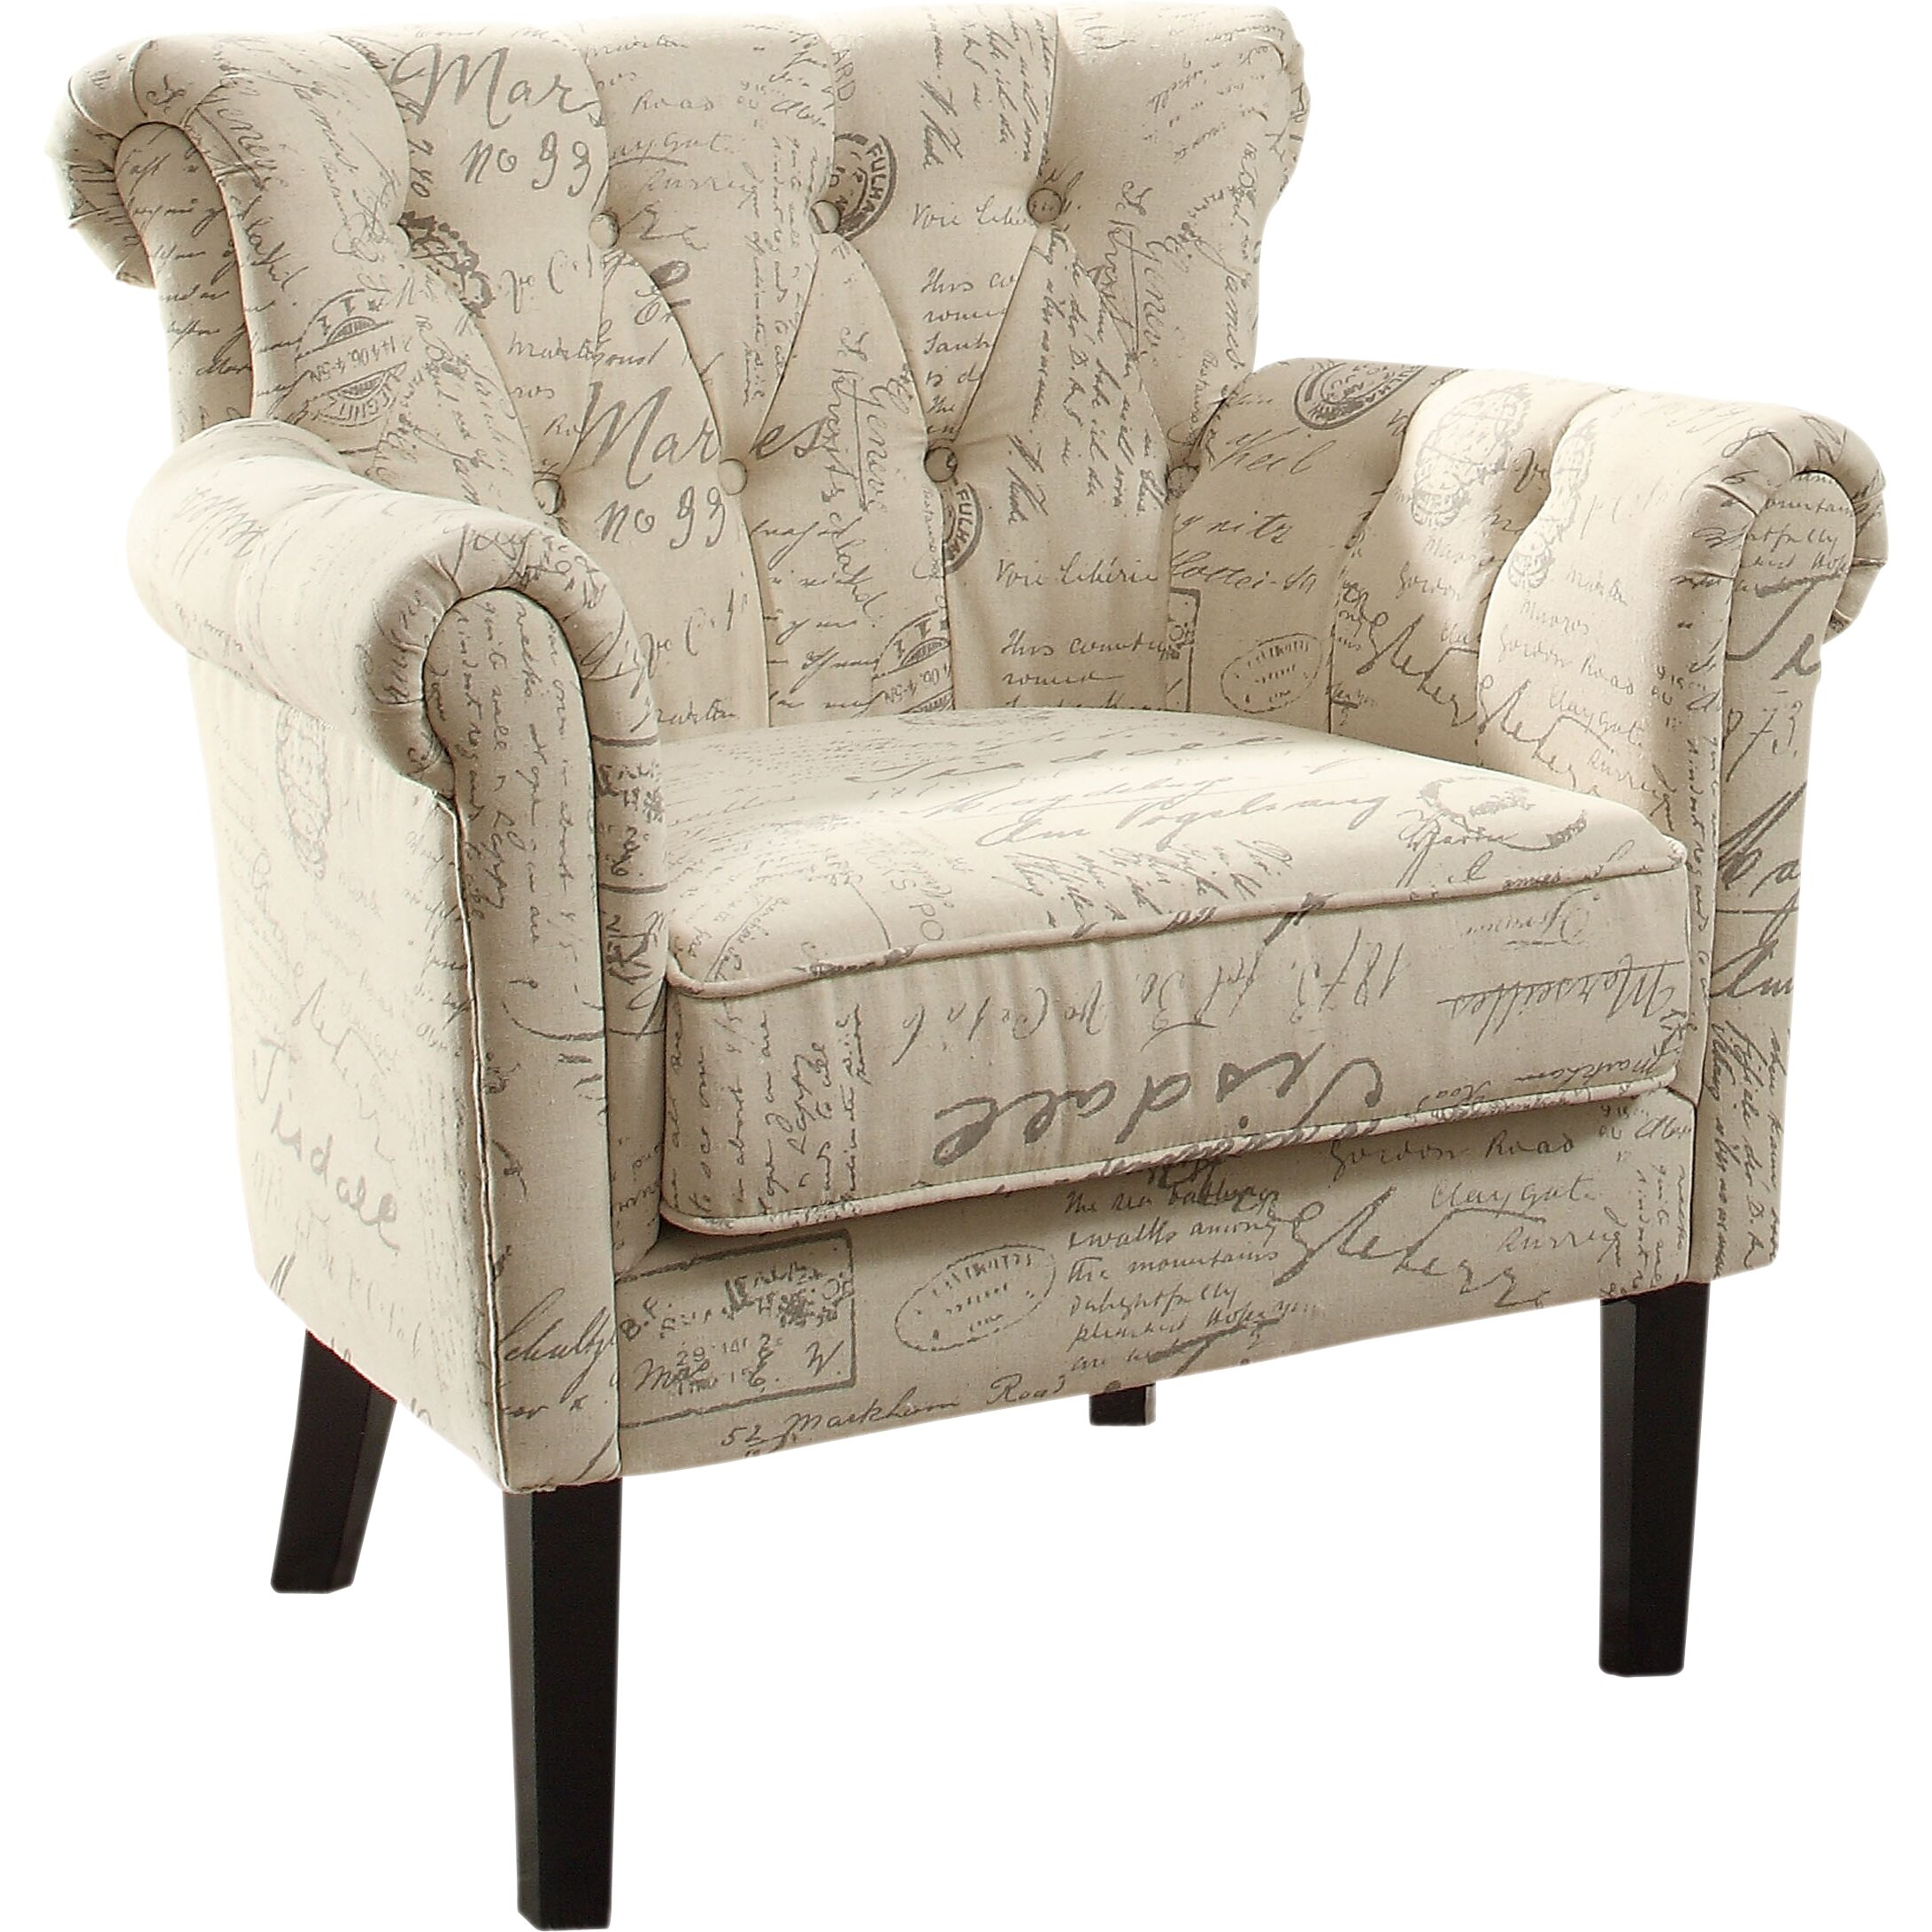 Woodhaven Furniture Reverse Search